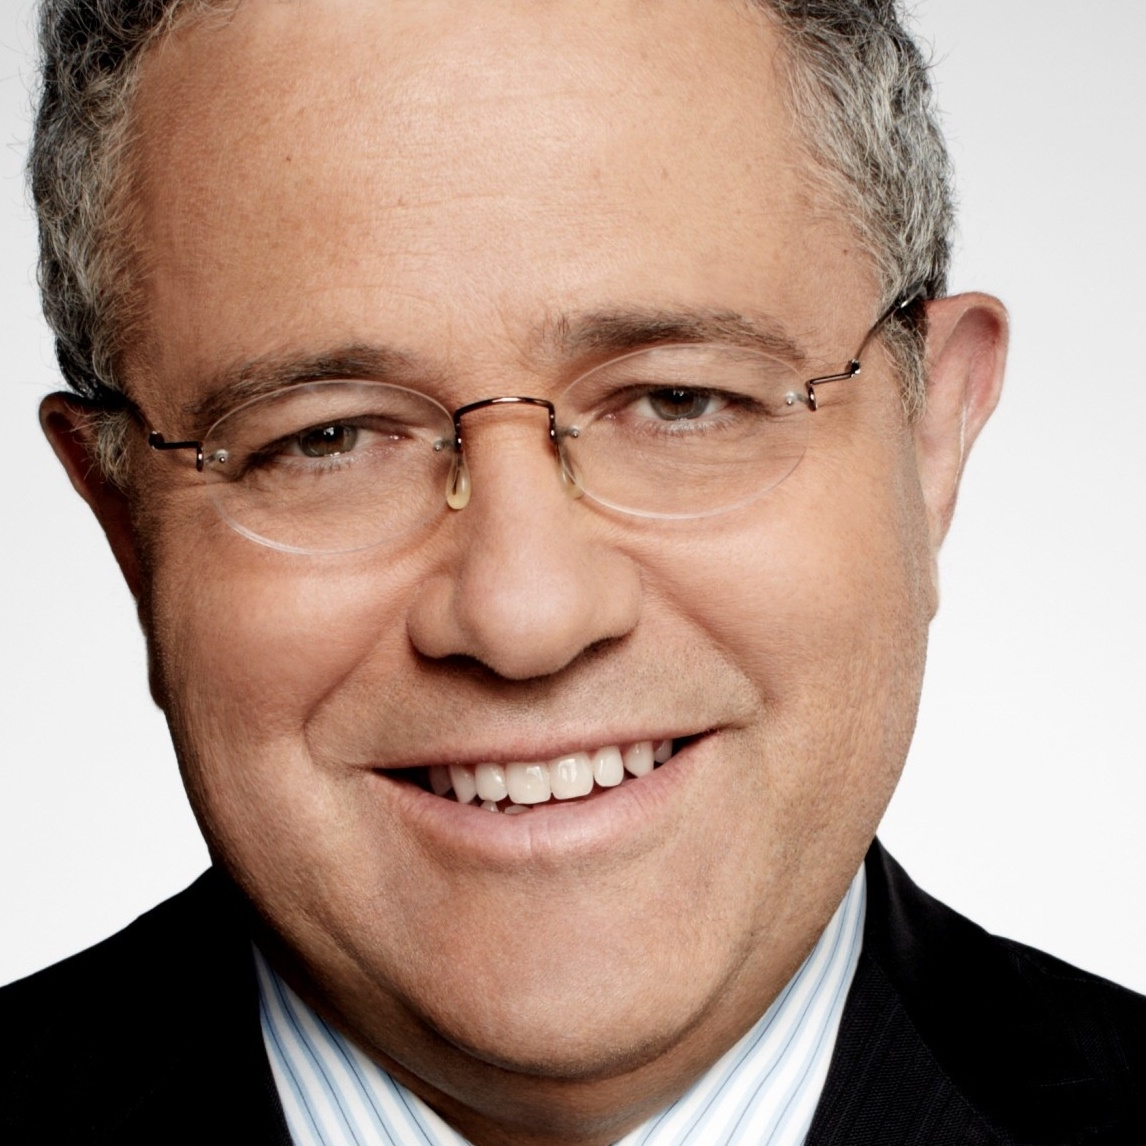 Jeffrey Toobin writes about legal issues for The New Yorker.